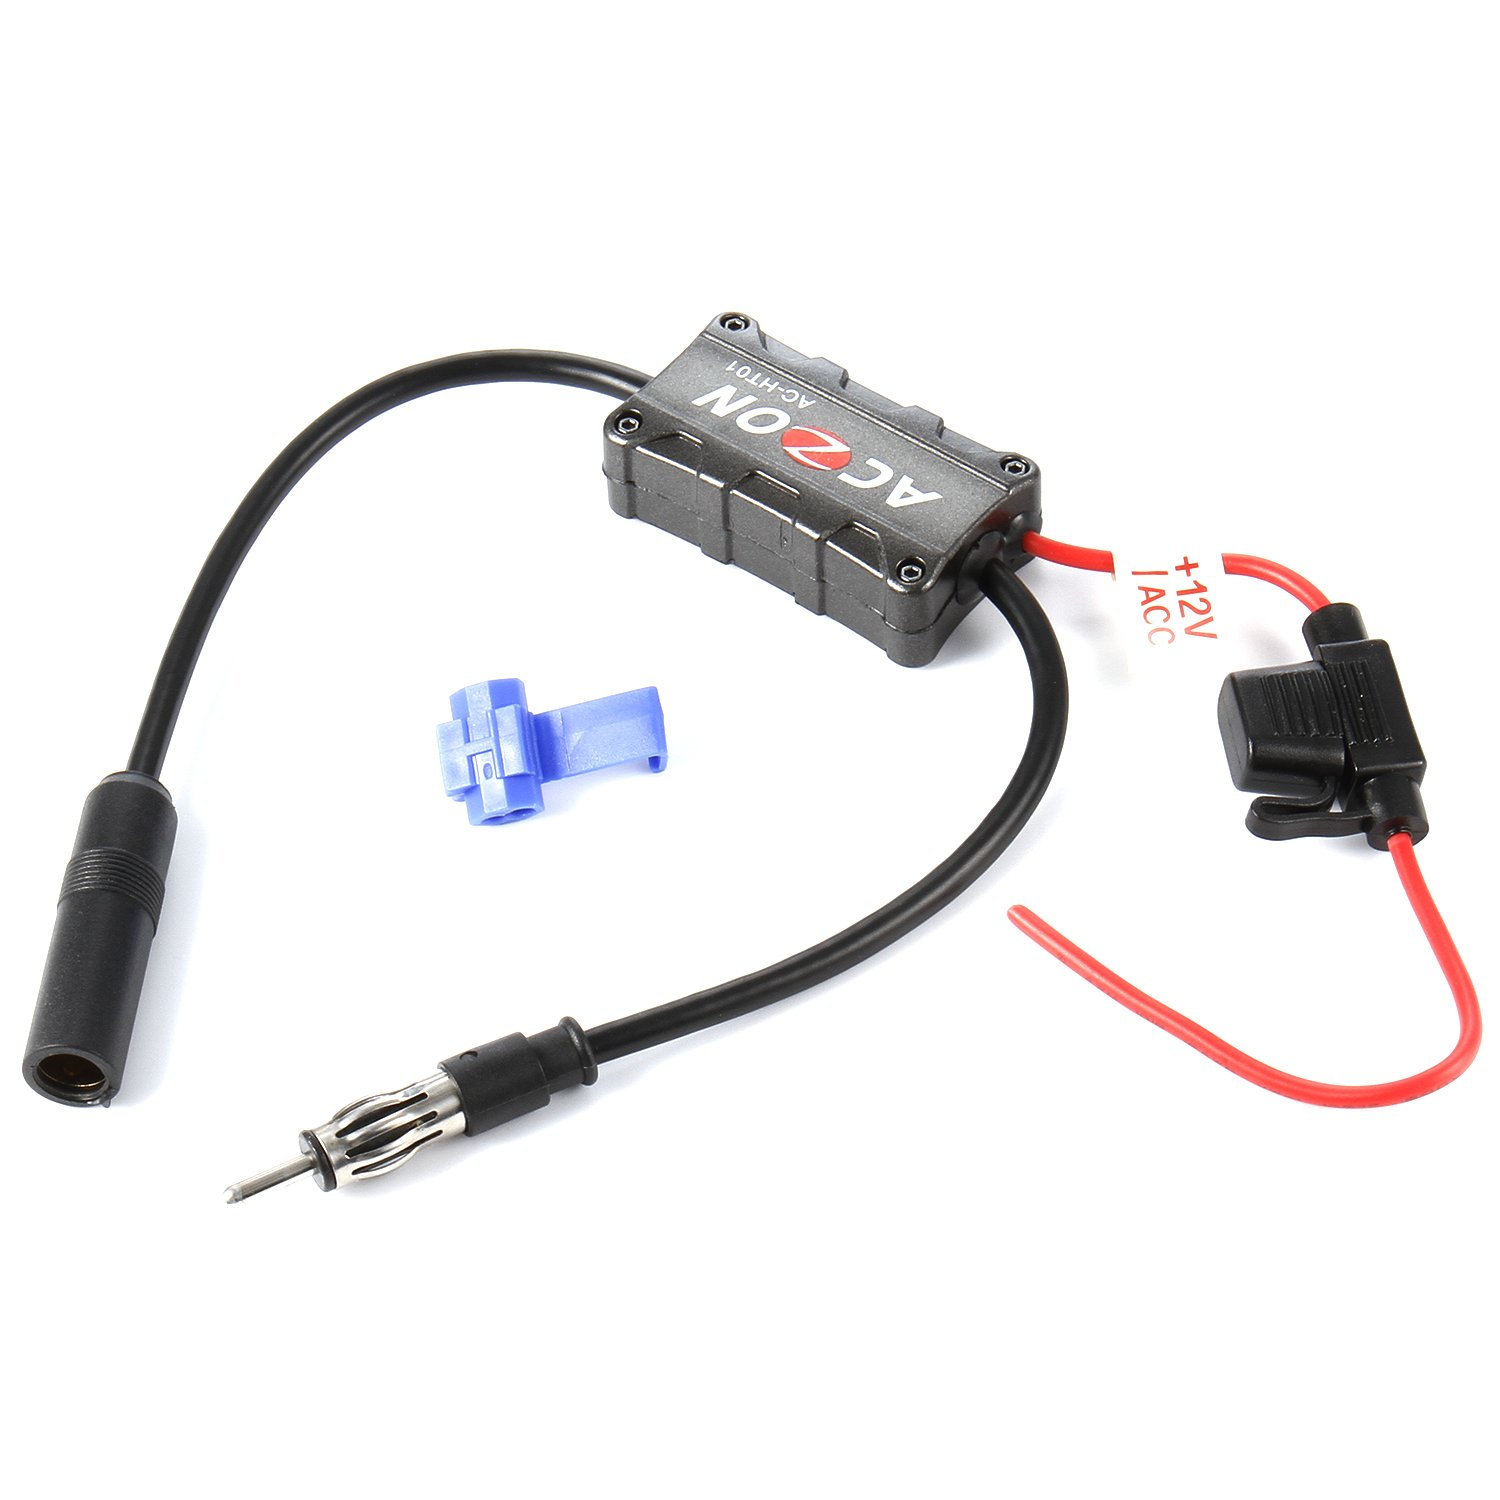 Vehicles Car Radio FM Antenna Signal Amplifier Booster for Both AM and FM Radio Stations